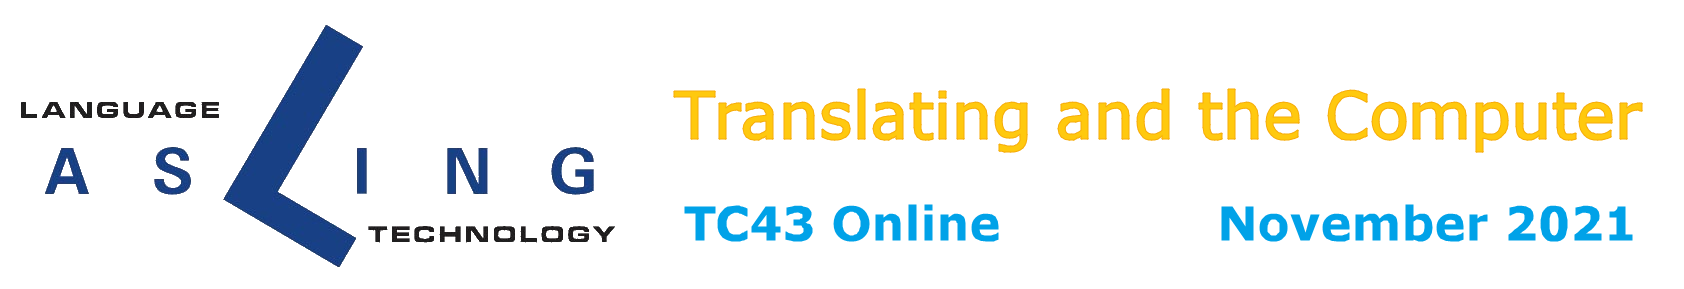 Translating and the Computer 43